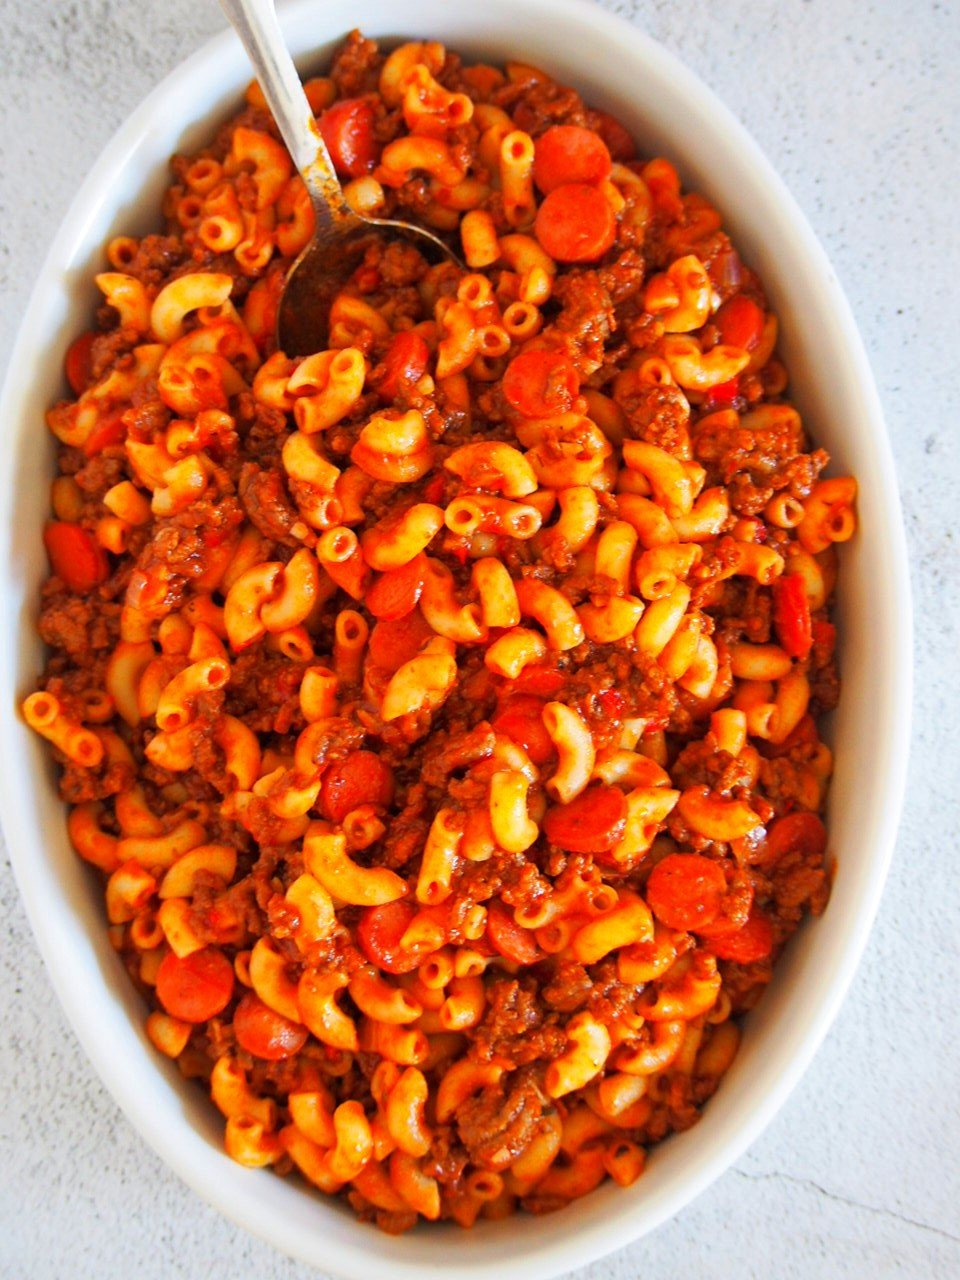 Macaroni and meat sauce tossed together in a dish, waiting for the topping of cheese sauce.